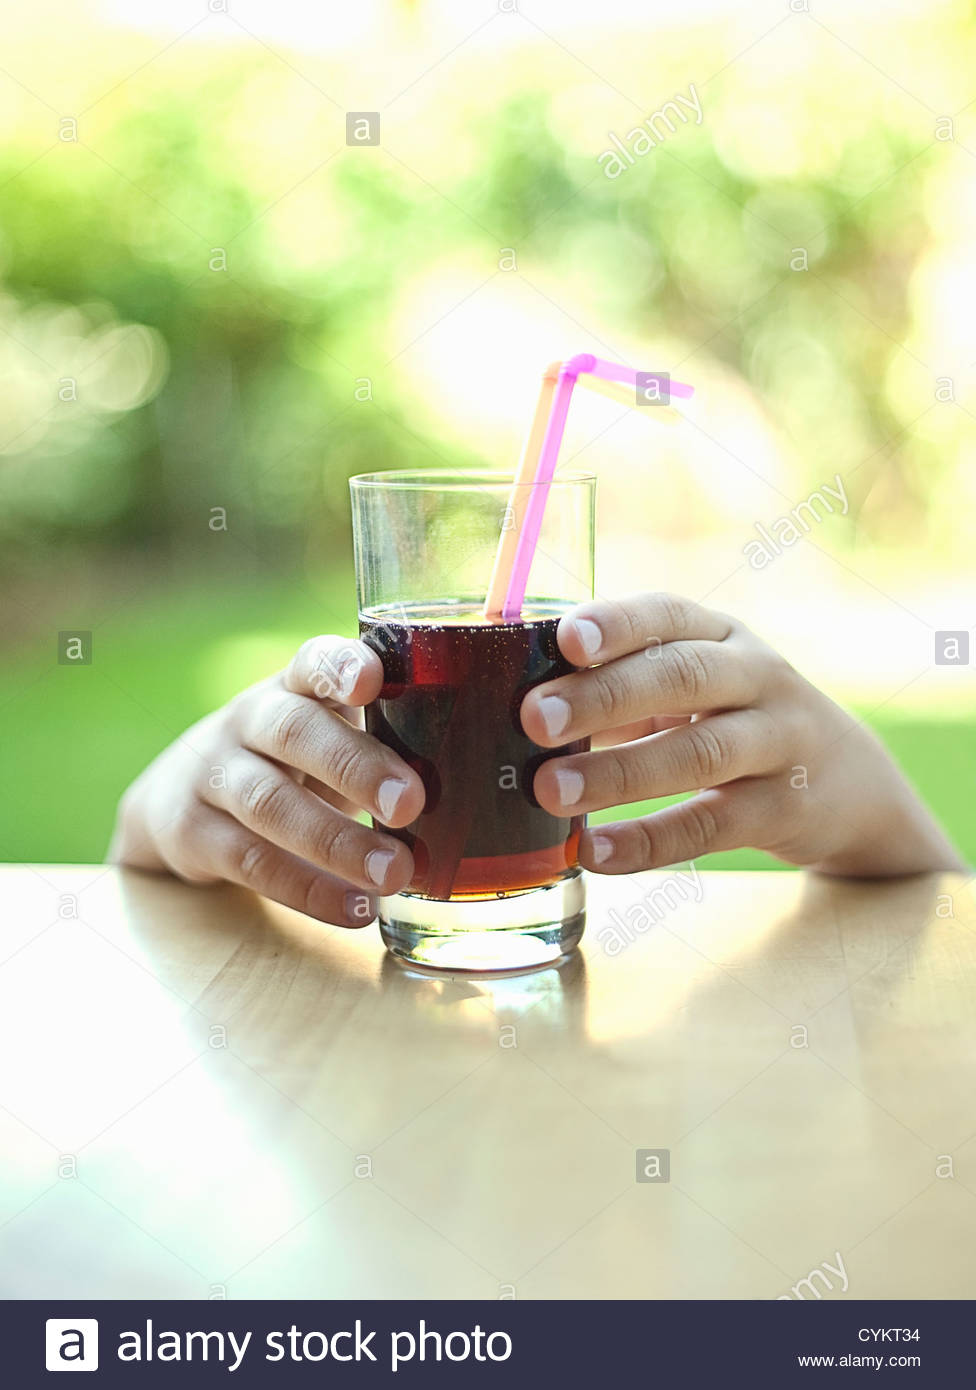 Hands reaching for glass of soda - Stock Image